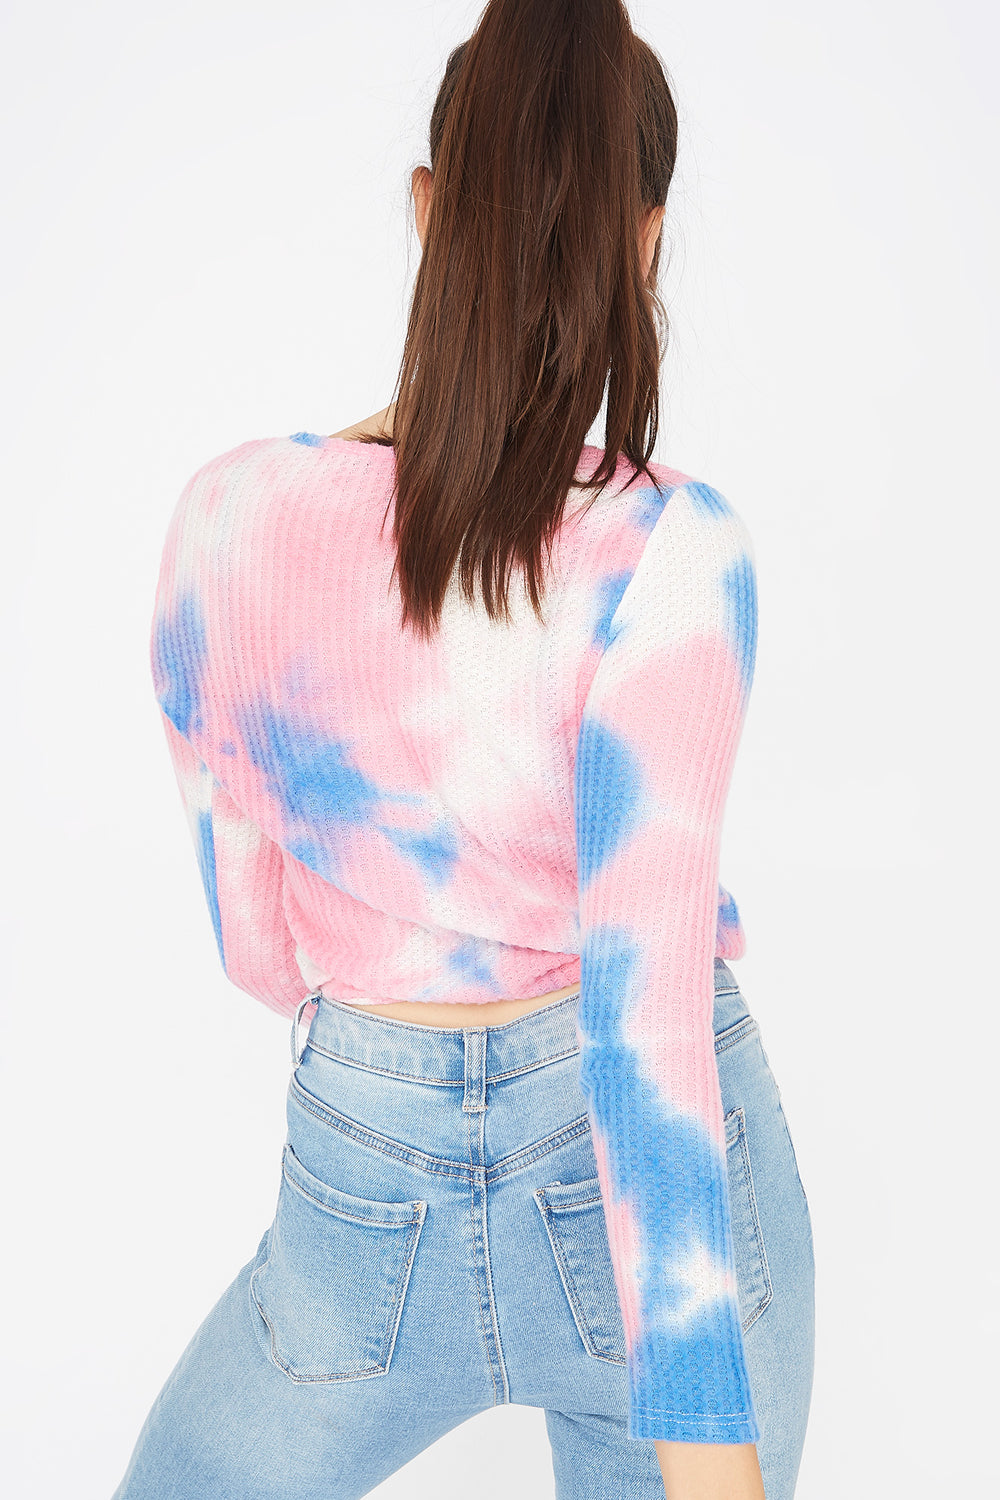 Waffle Knit Pink Tie Dye Cinched Hem Top Navy